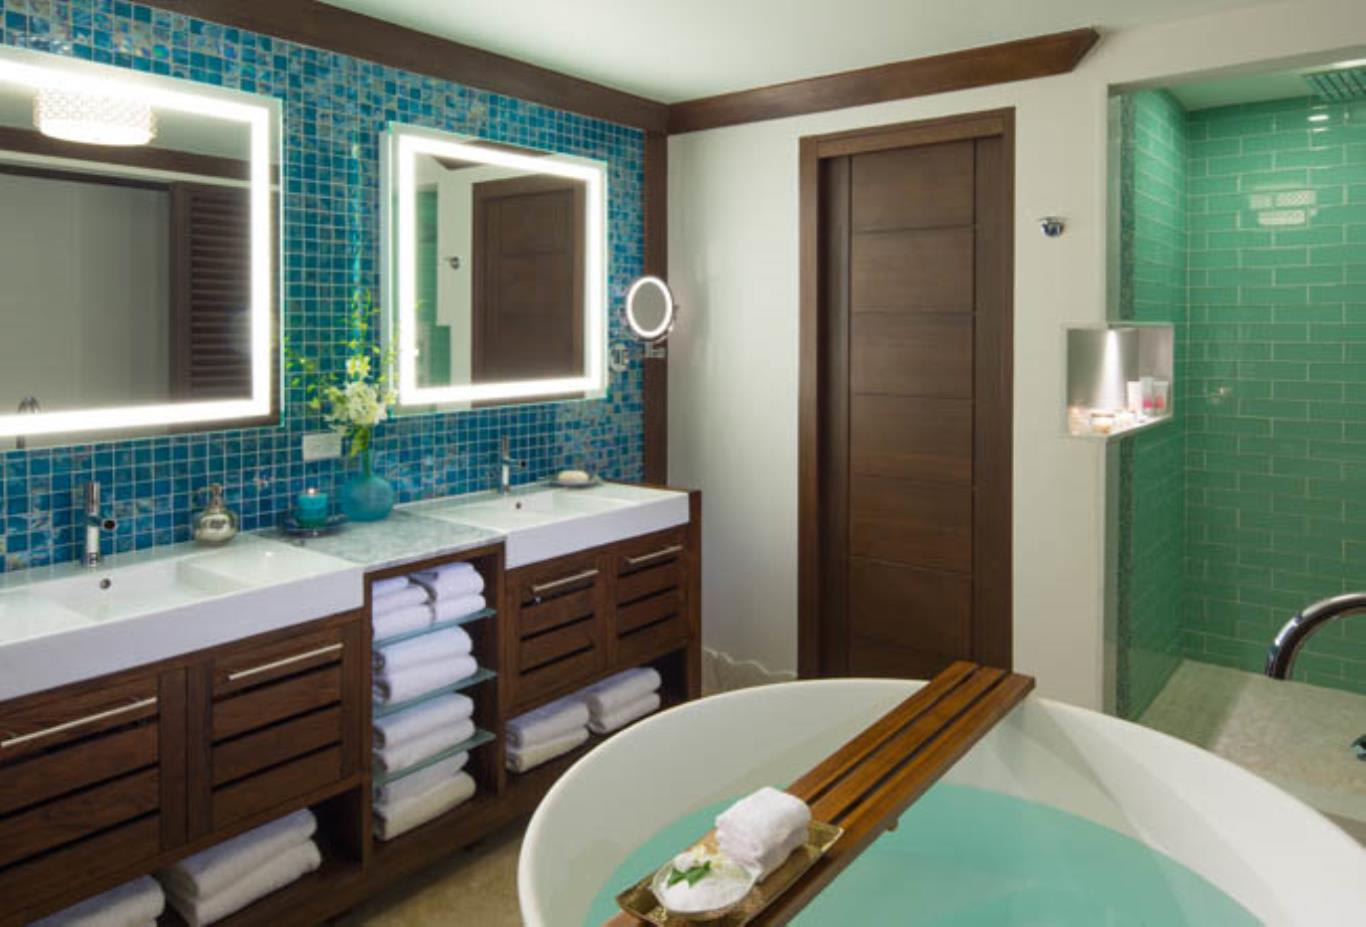 Crystal Lagoon Swim-Up One Bedrom Butler Suite with Tranquility Soaking Tub